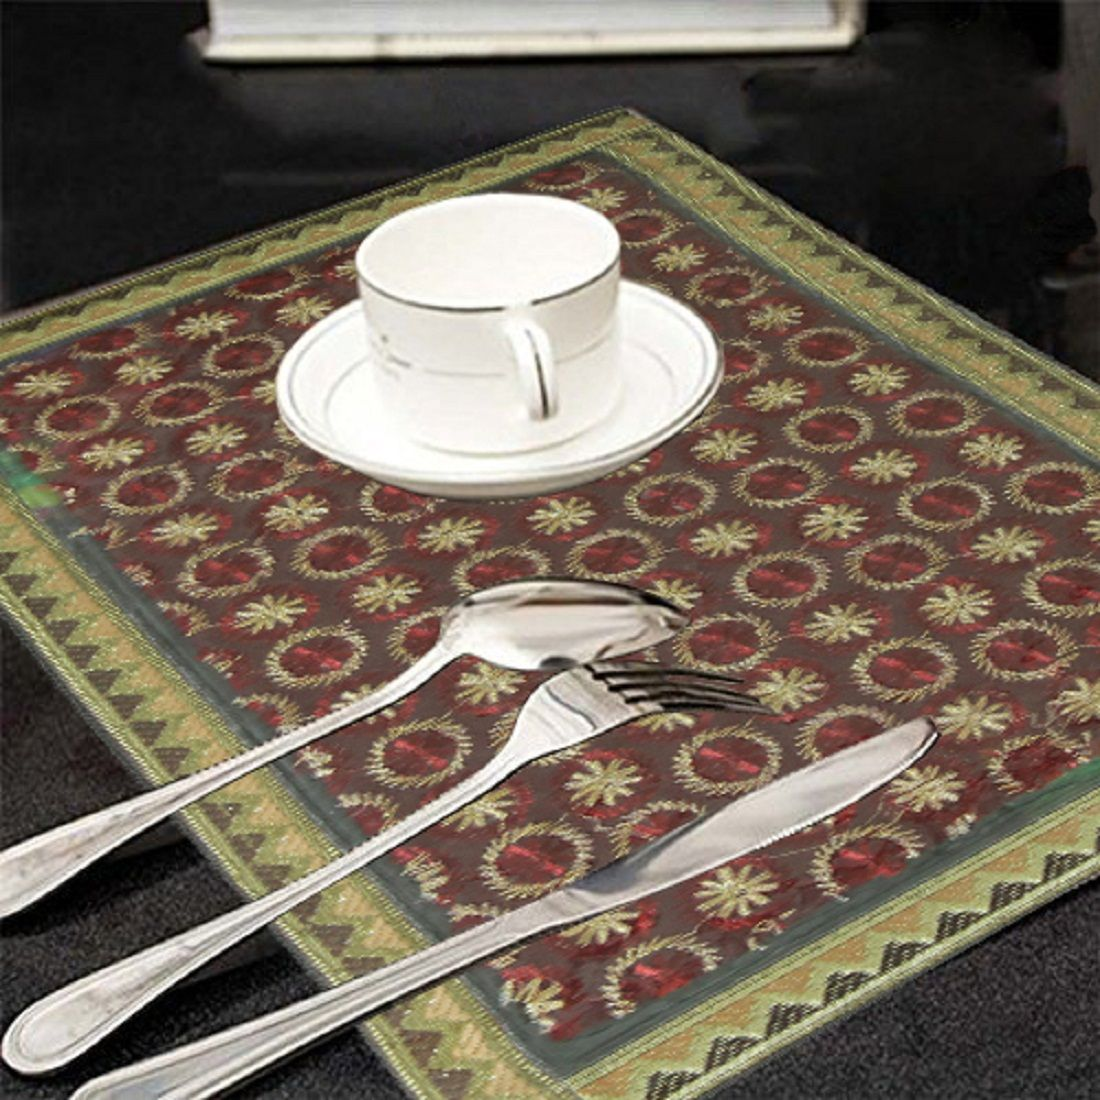 Kuber Industries™ Dining Table Place Mats Set Of 6 Pcs In Laminated Maroon Patch Design (Golden Lace)